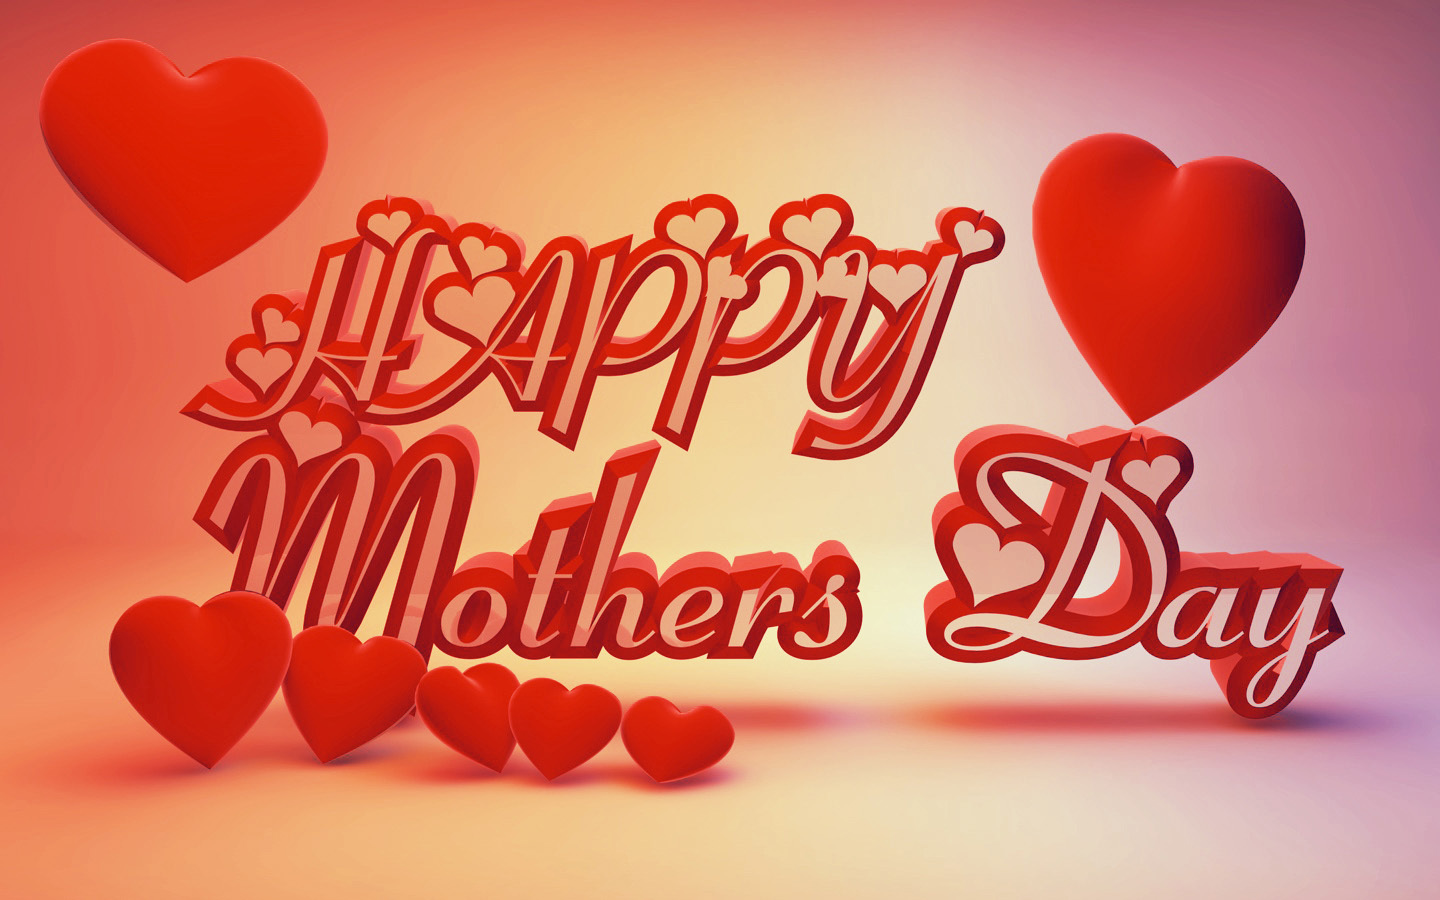 Happy Mothers Day Hd Background 2